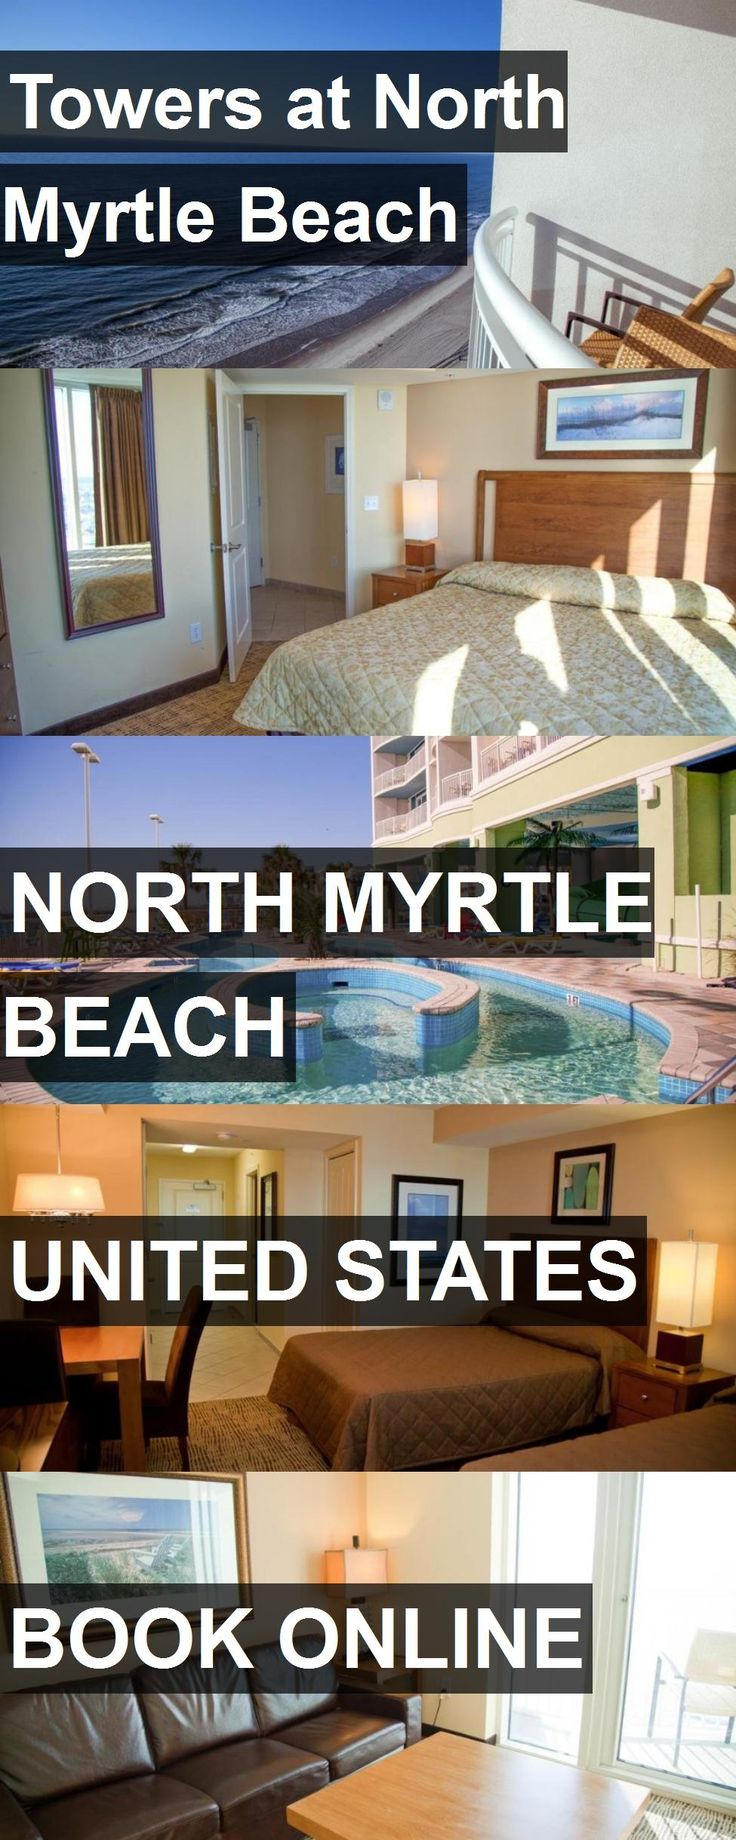 Hotel Towers at North Myrtle Beach in North Myrtle Beach, United States. For more information, photos, reviews and best prices please follow the link. #UnitedStates #NorthMyrtleBeach #TowersatNorthMyrtleBeach #hotel #travel #vacation